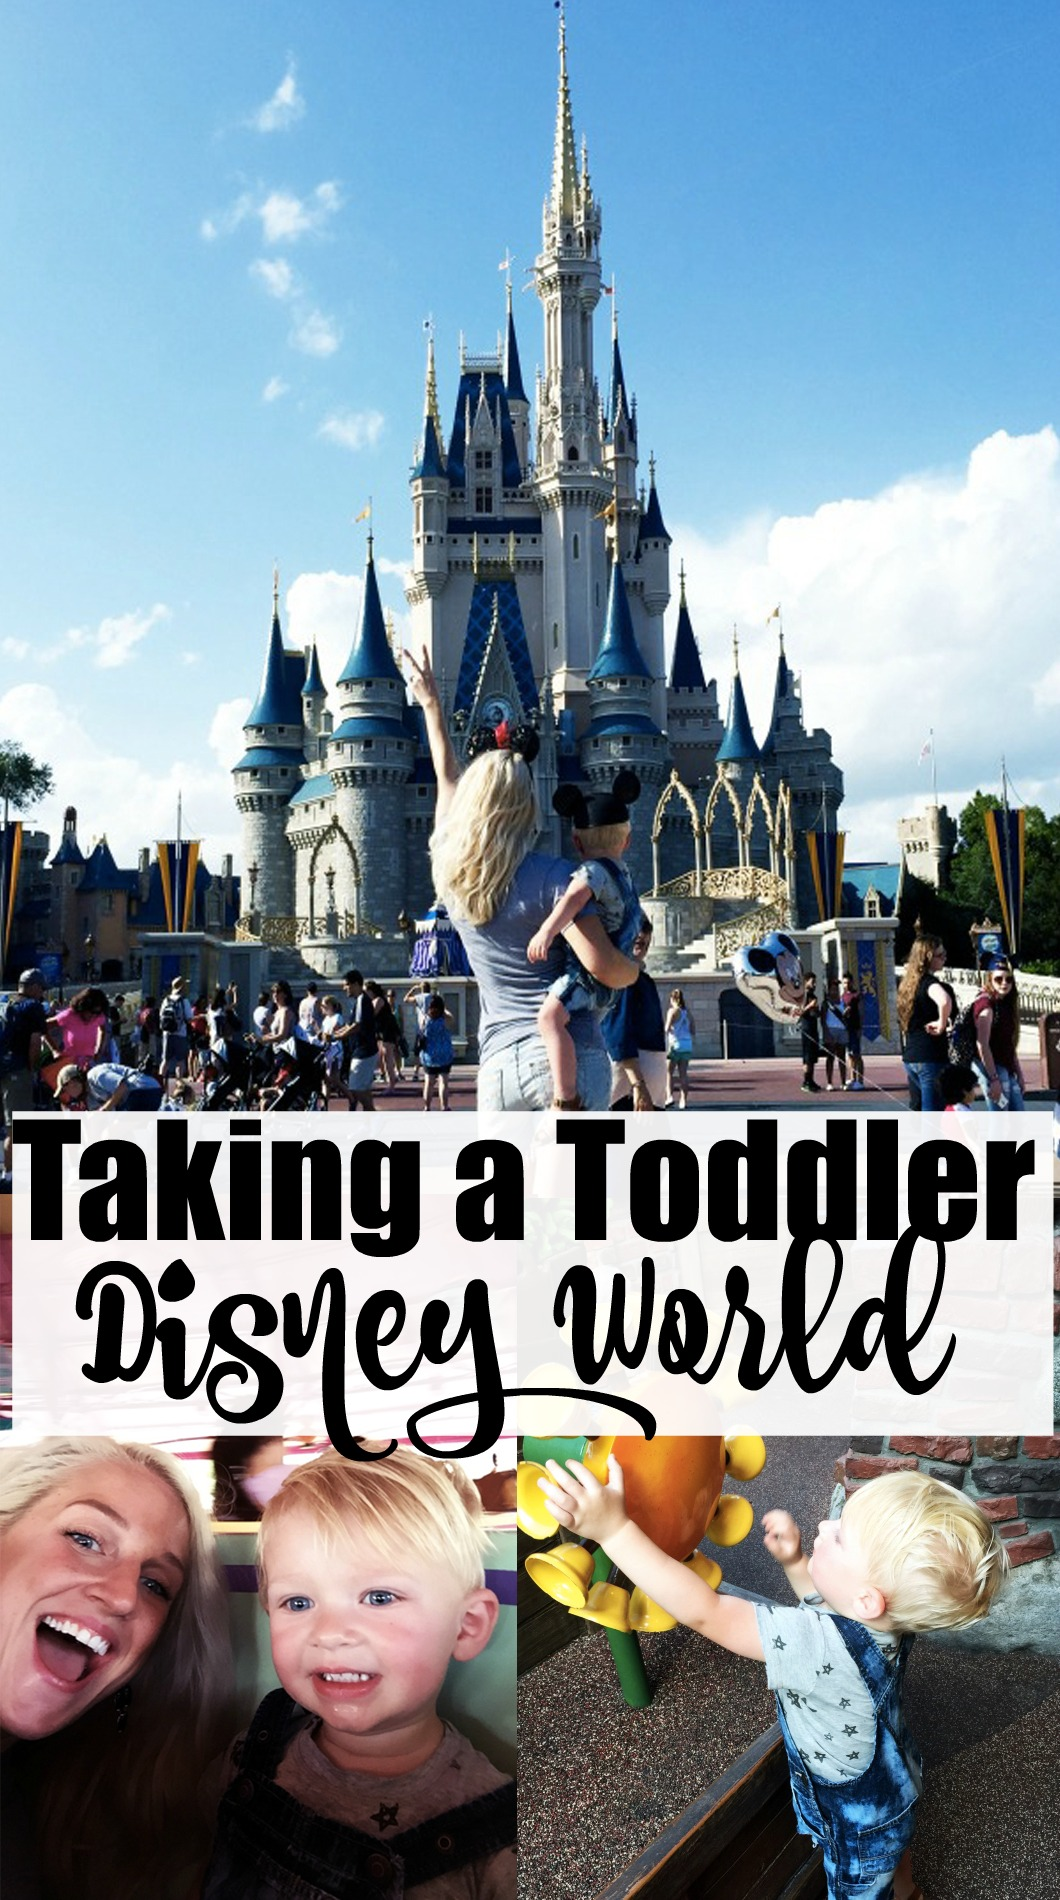 Taking Toddler to Disney World - Disney World With Toddlers by Atlanta travel blogger Happily Hughes